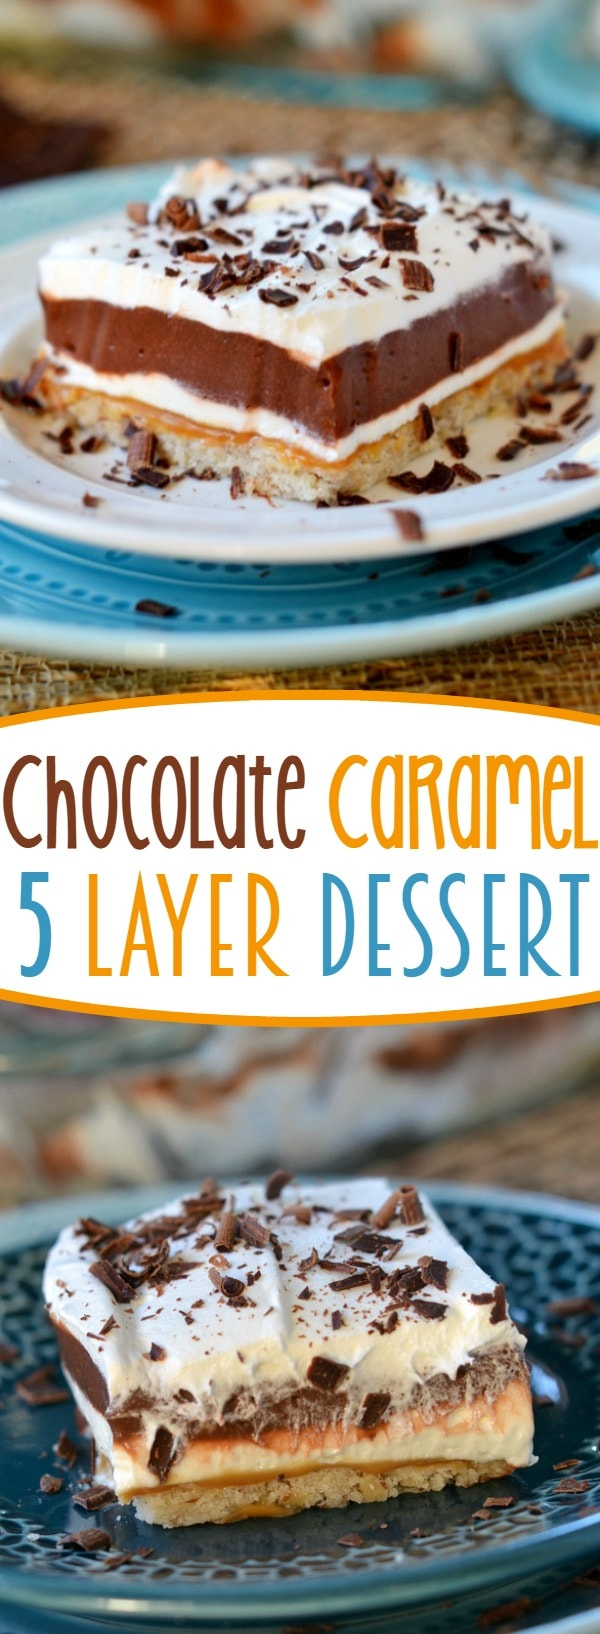 chocolate-caramel-five-layer-dessert-collage